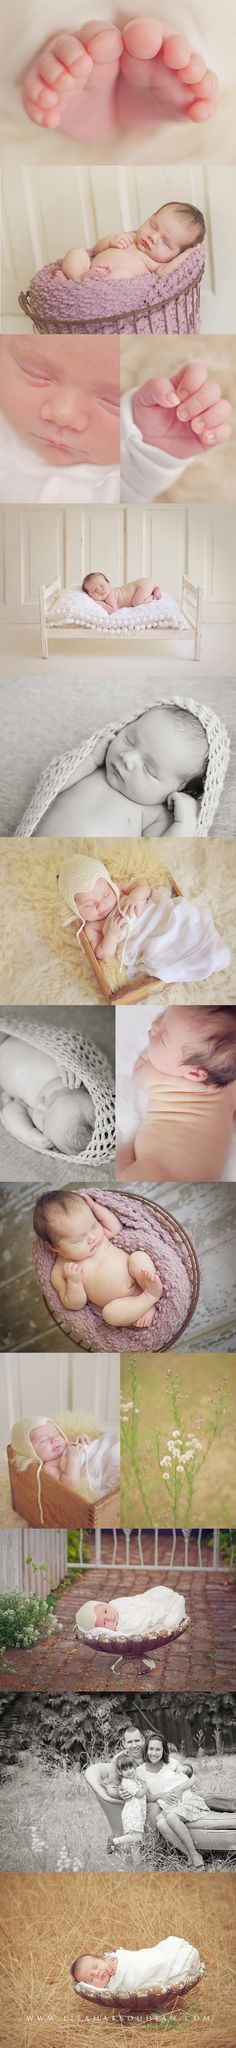 A Perfect Little Miracle | California Newborn Photographer » Lisa Maksoudian Photography